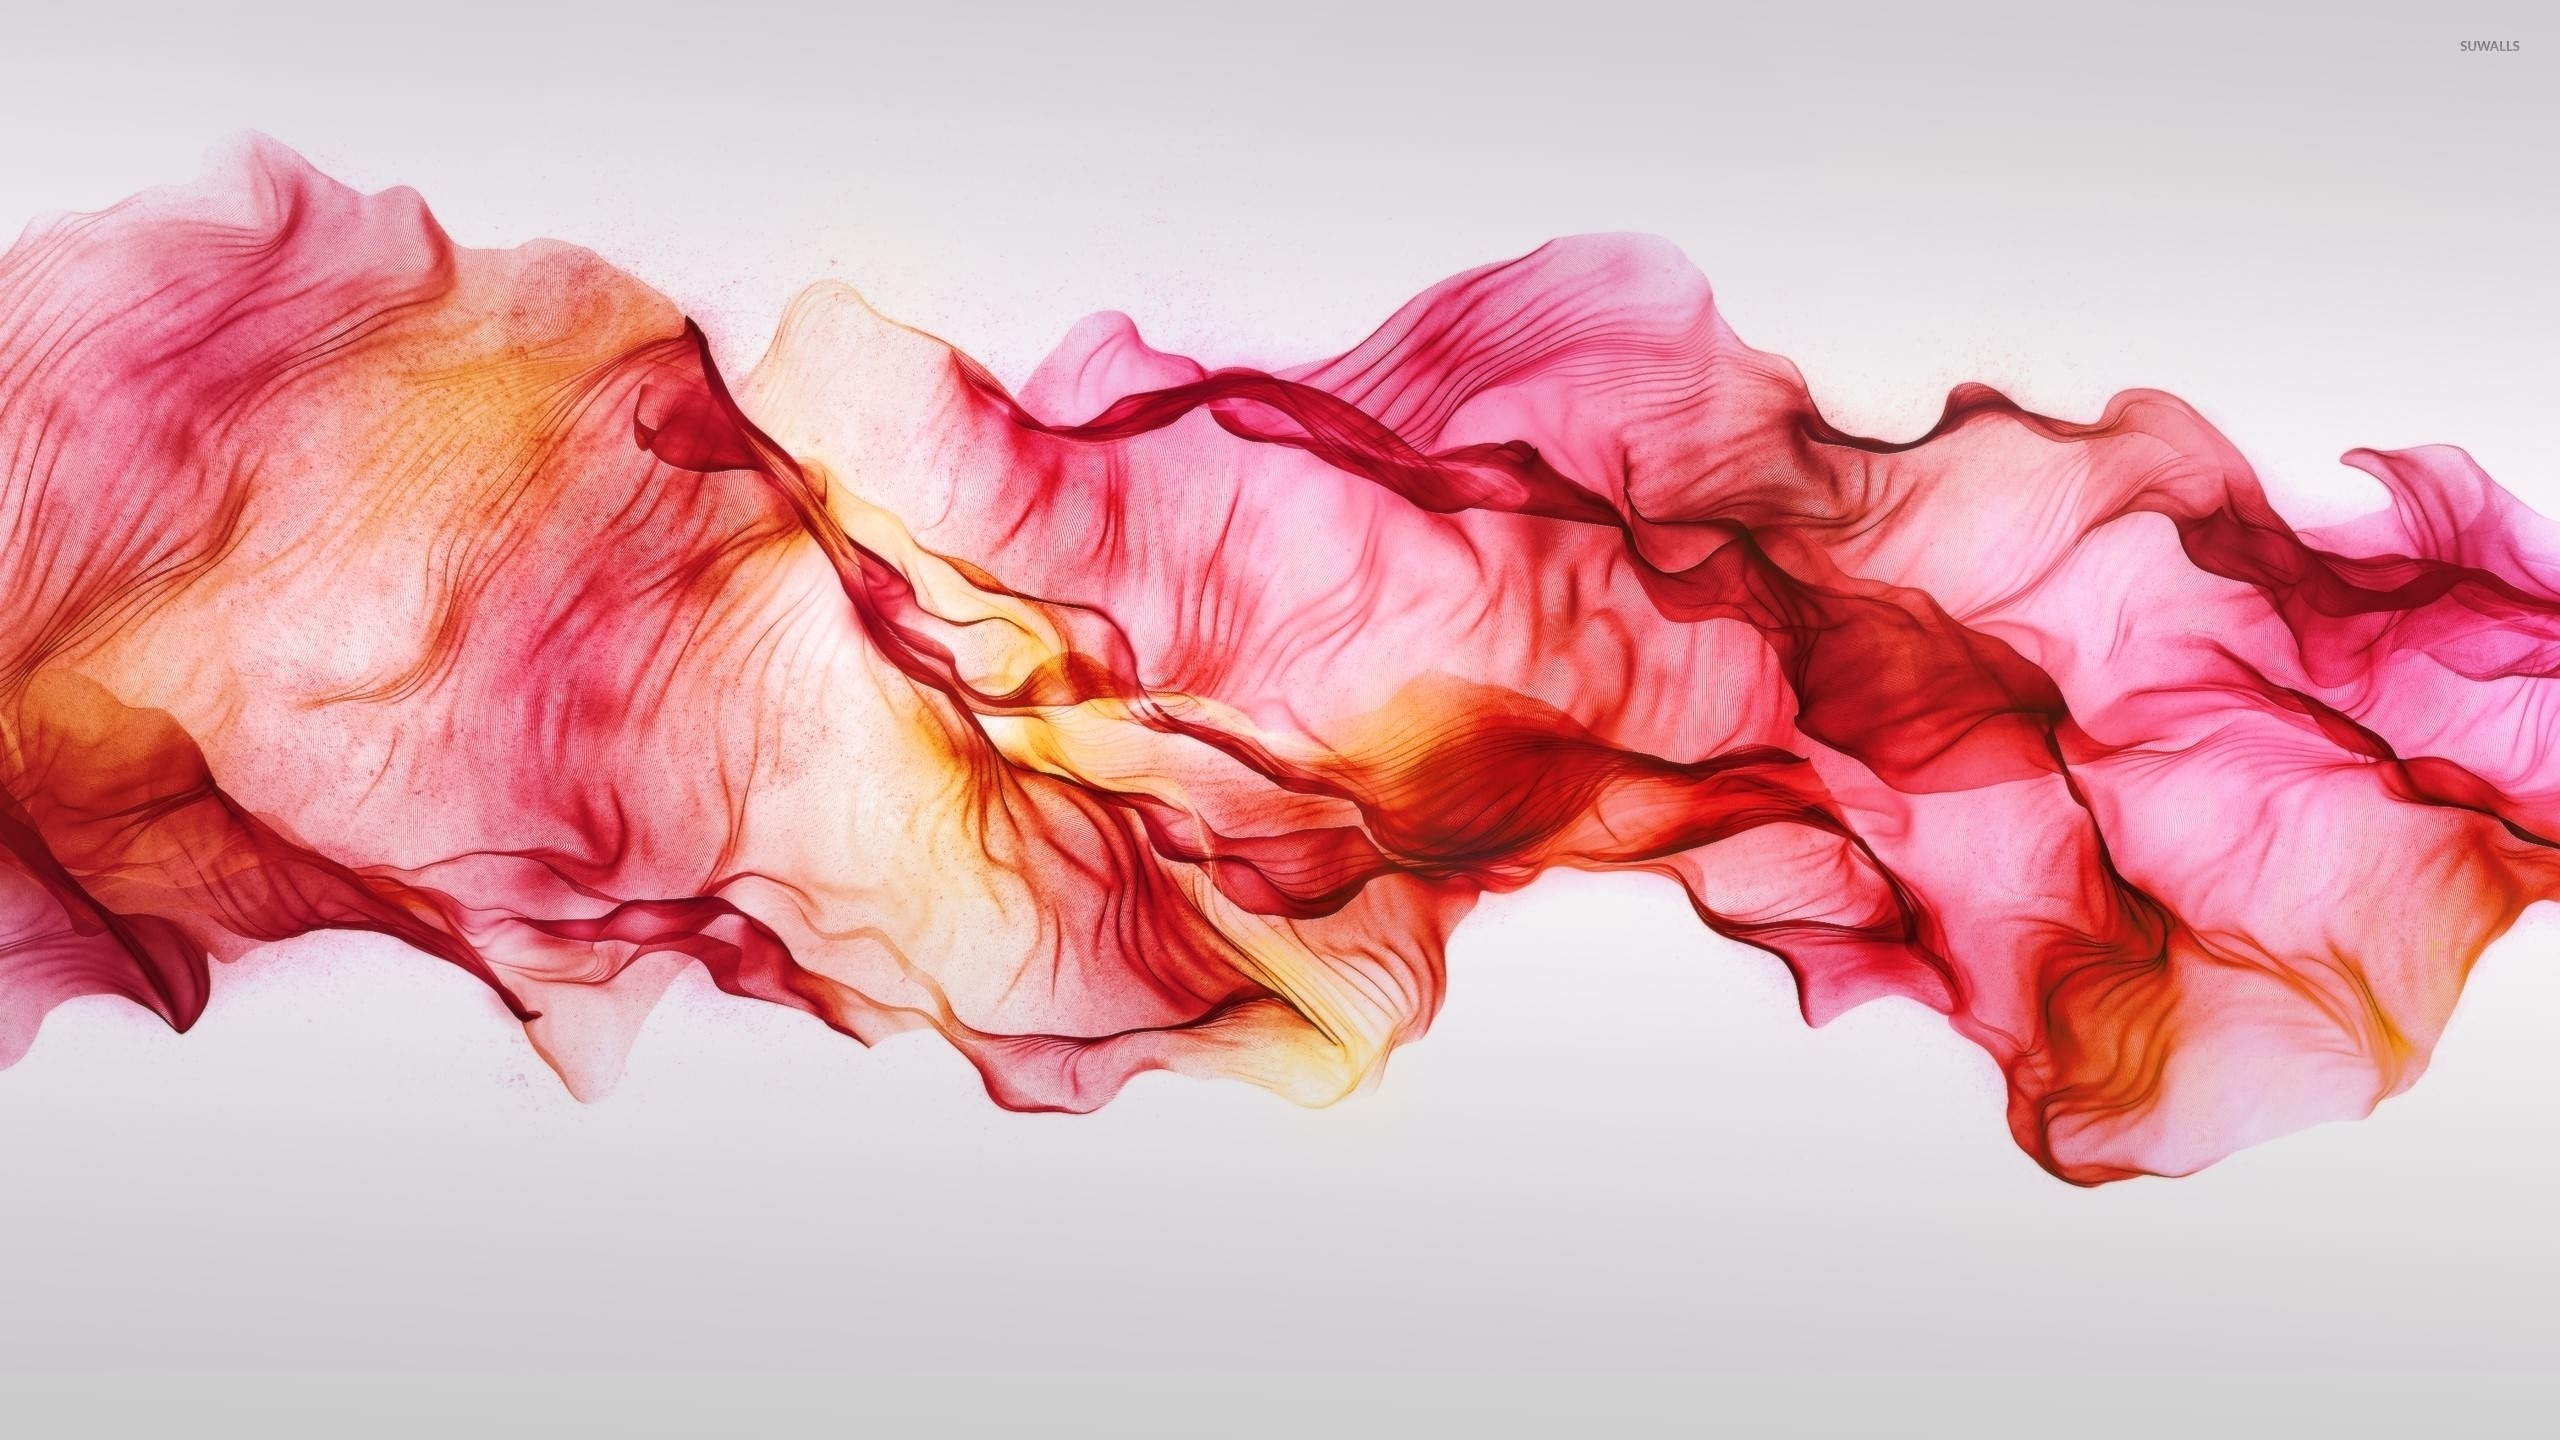 Red smoke mixing in the air wallpaper jpg